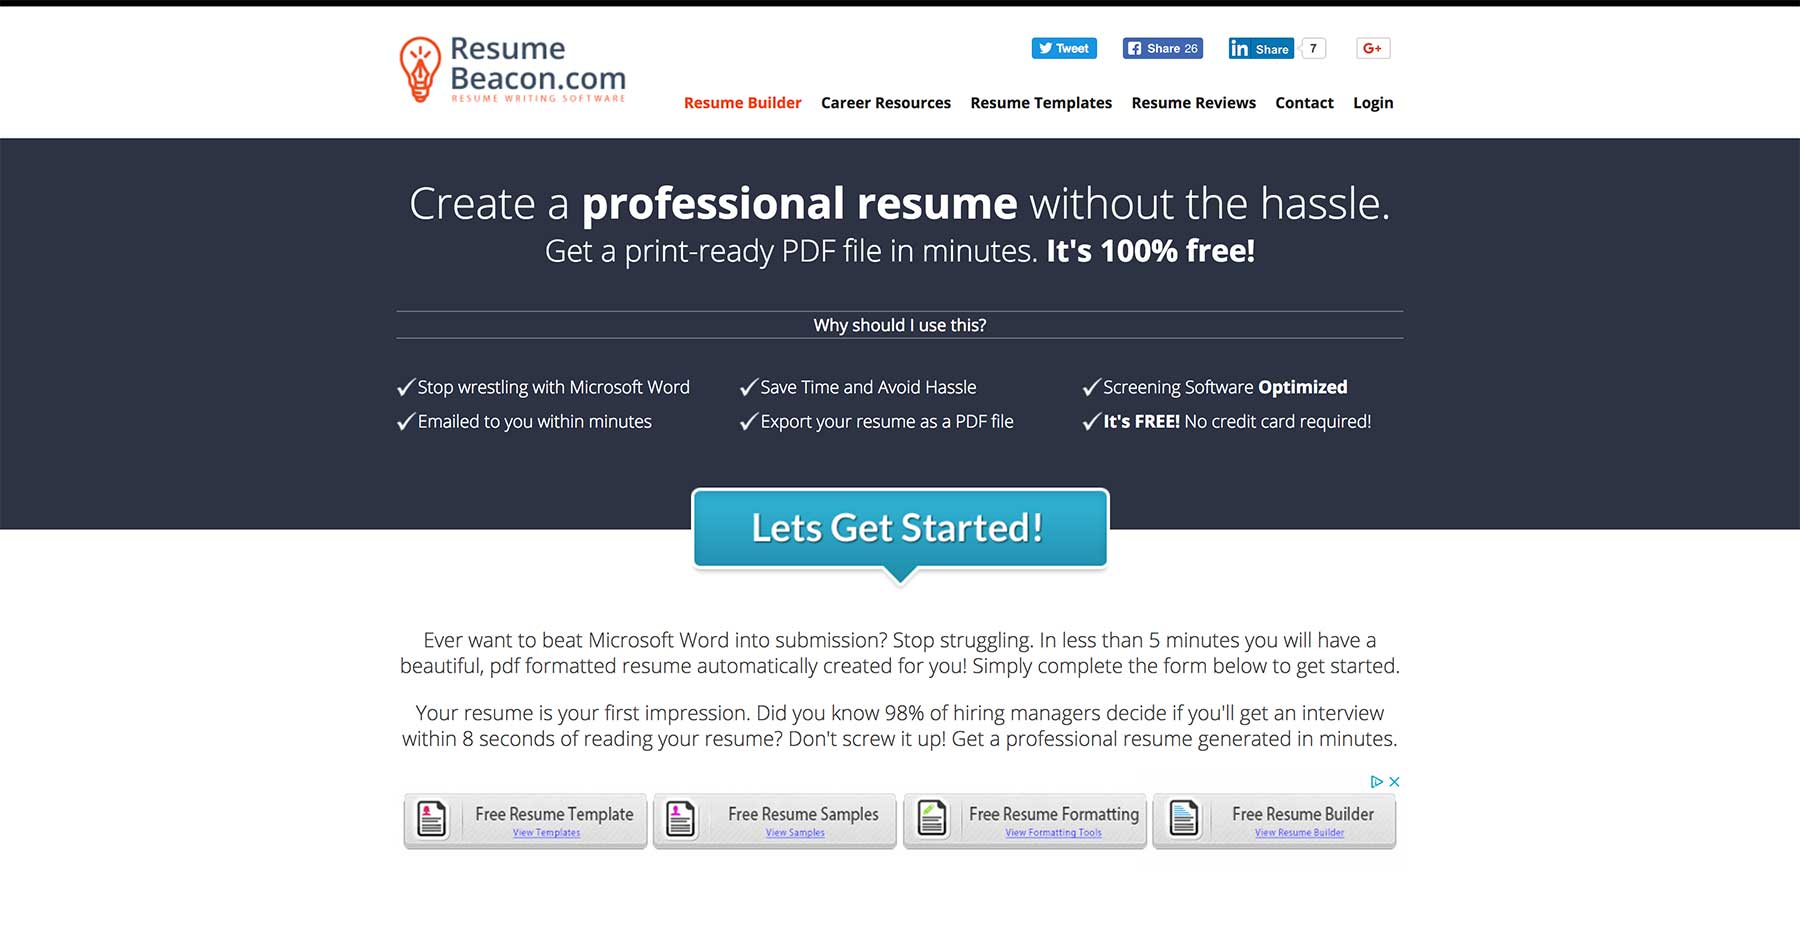 resume beacon homepage